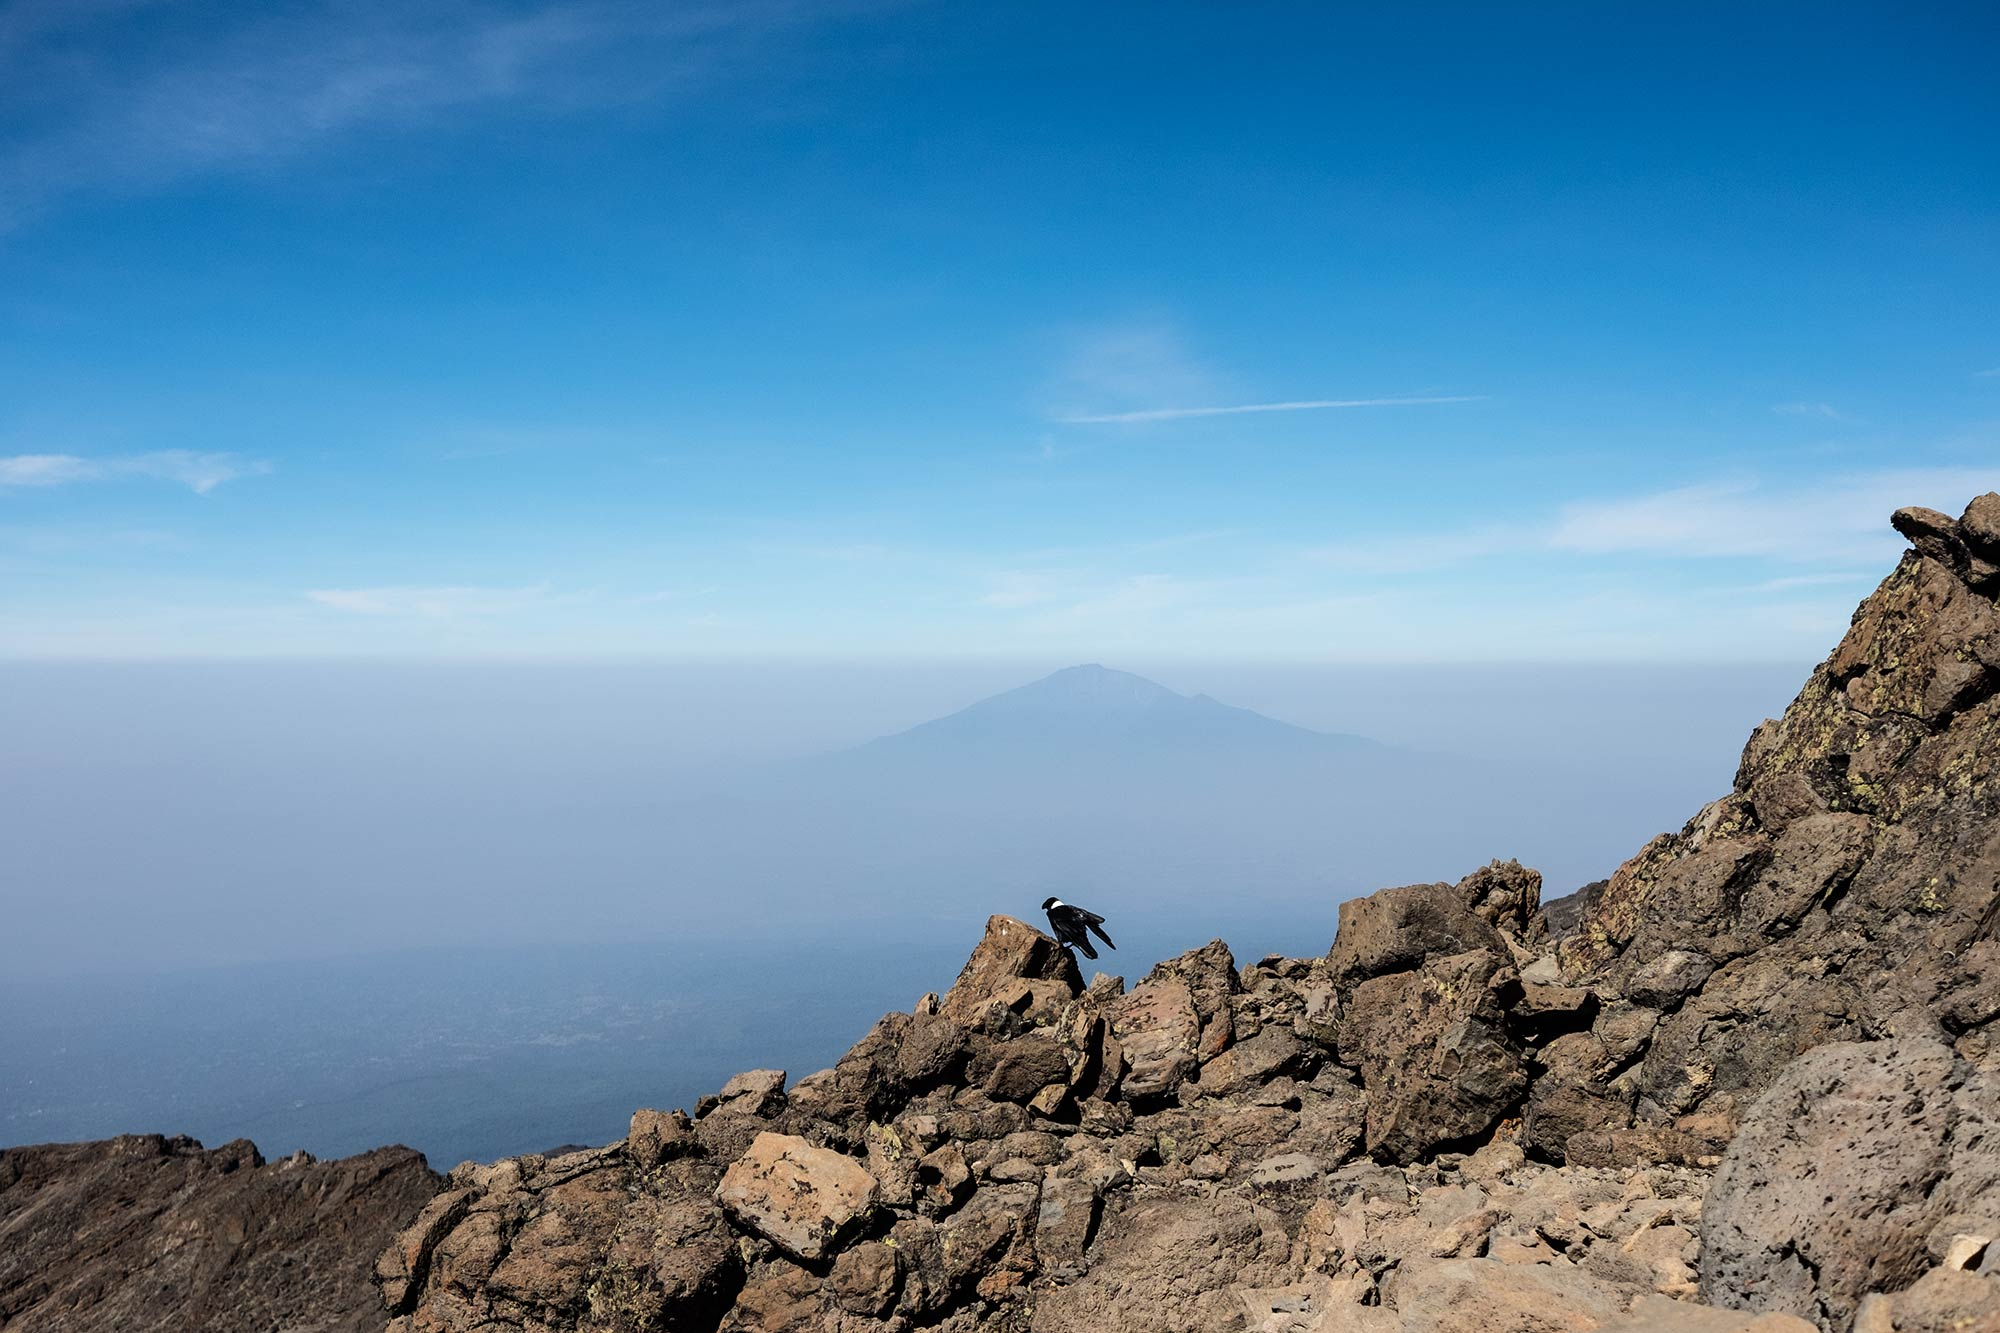 Even at 16,000 feet on a barren Kilimanjaro rock with no water source for miles, there's life. Mount Meru is visible in the background.